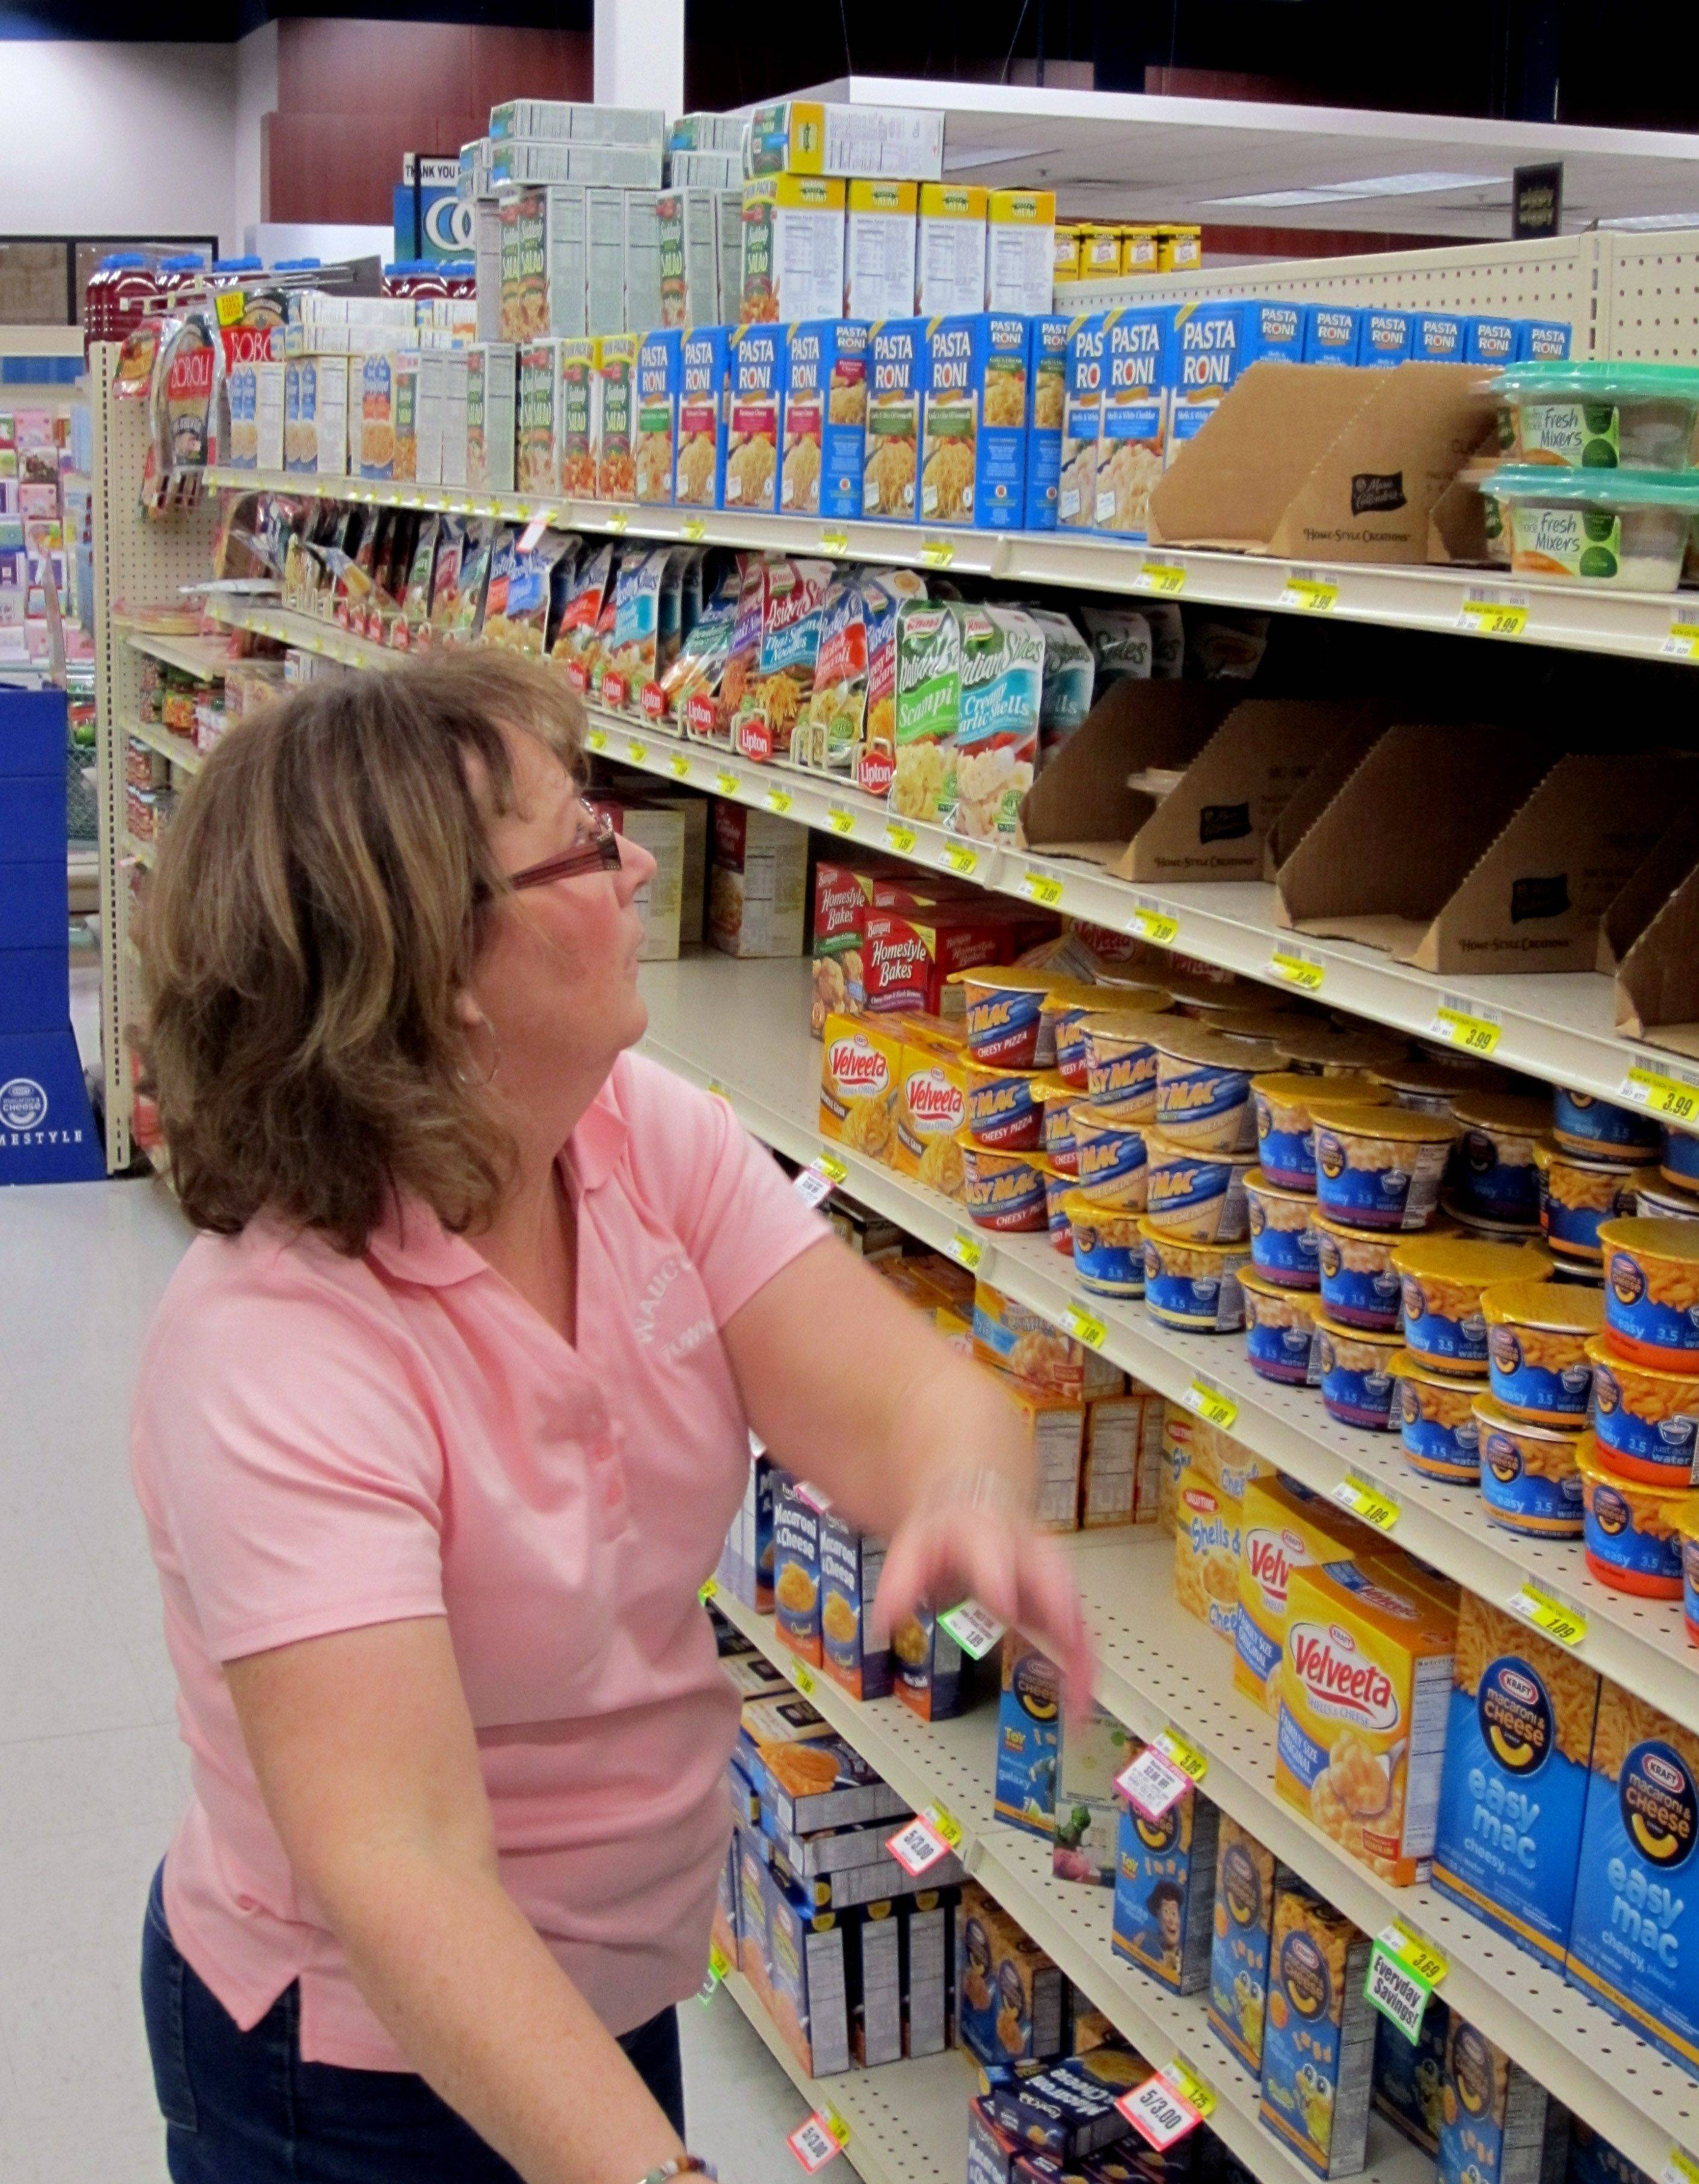 Wauconda Township Assessor Patricia Oaks reaches for more non-perishables during the Lake County Farm Bureau's Race for Hunger event Thursday at the Zion Piggly Wiggly store.